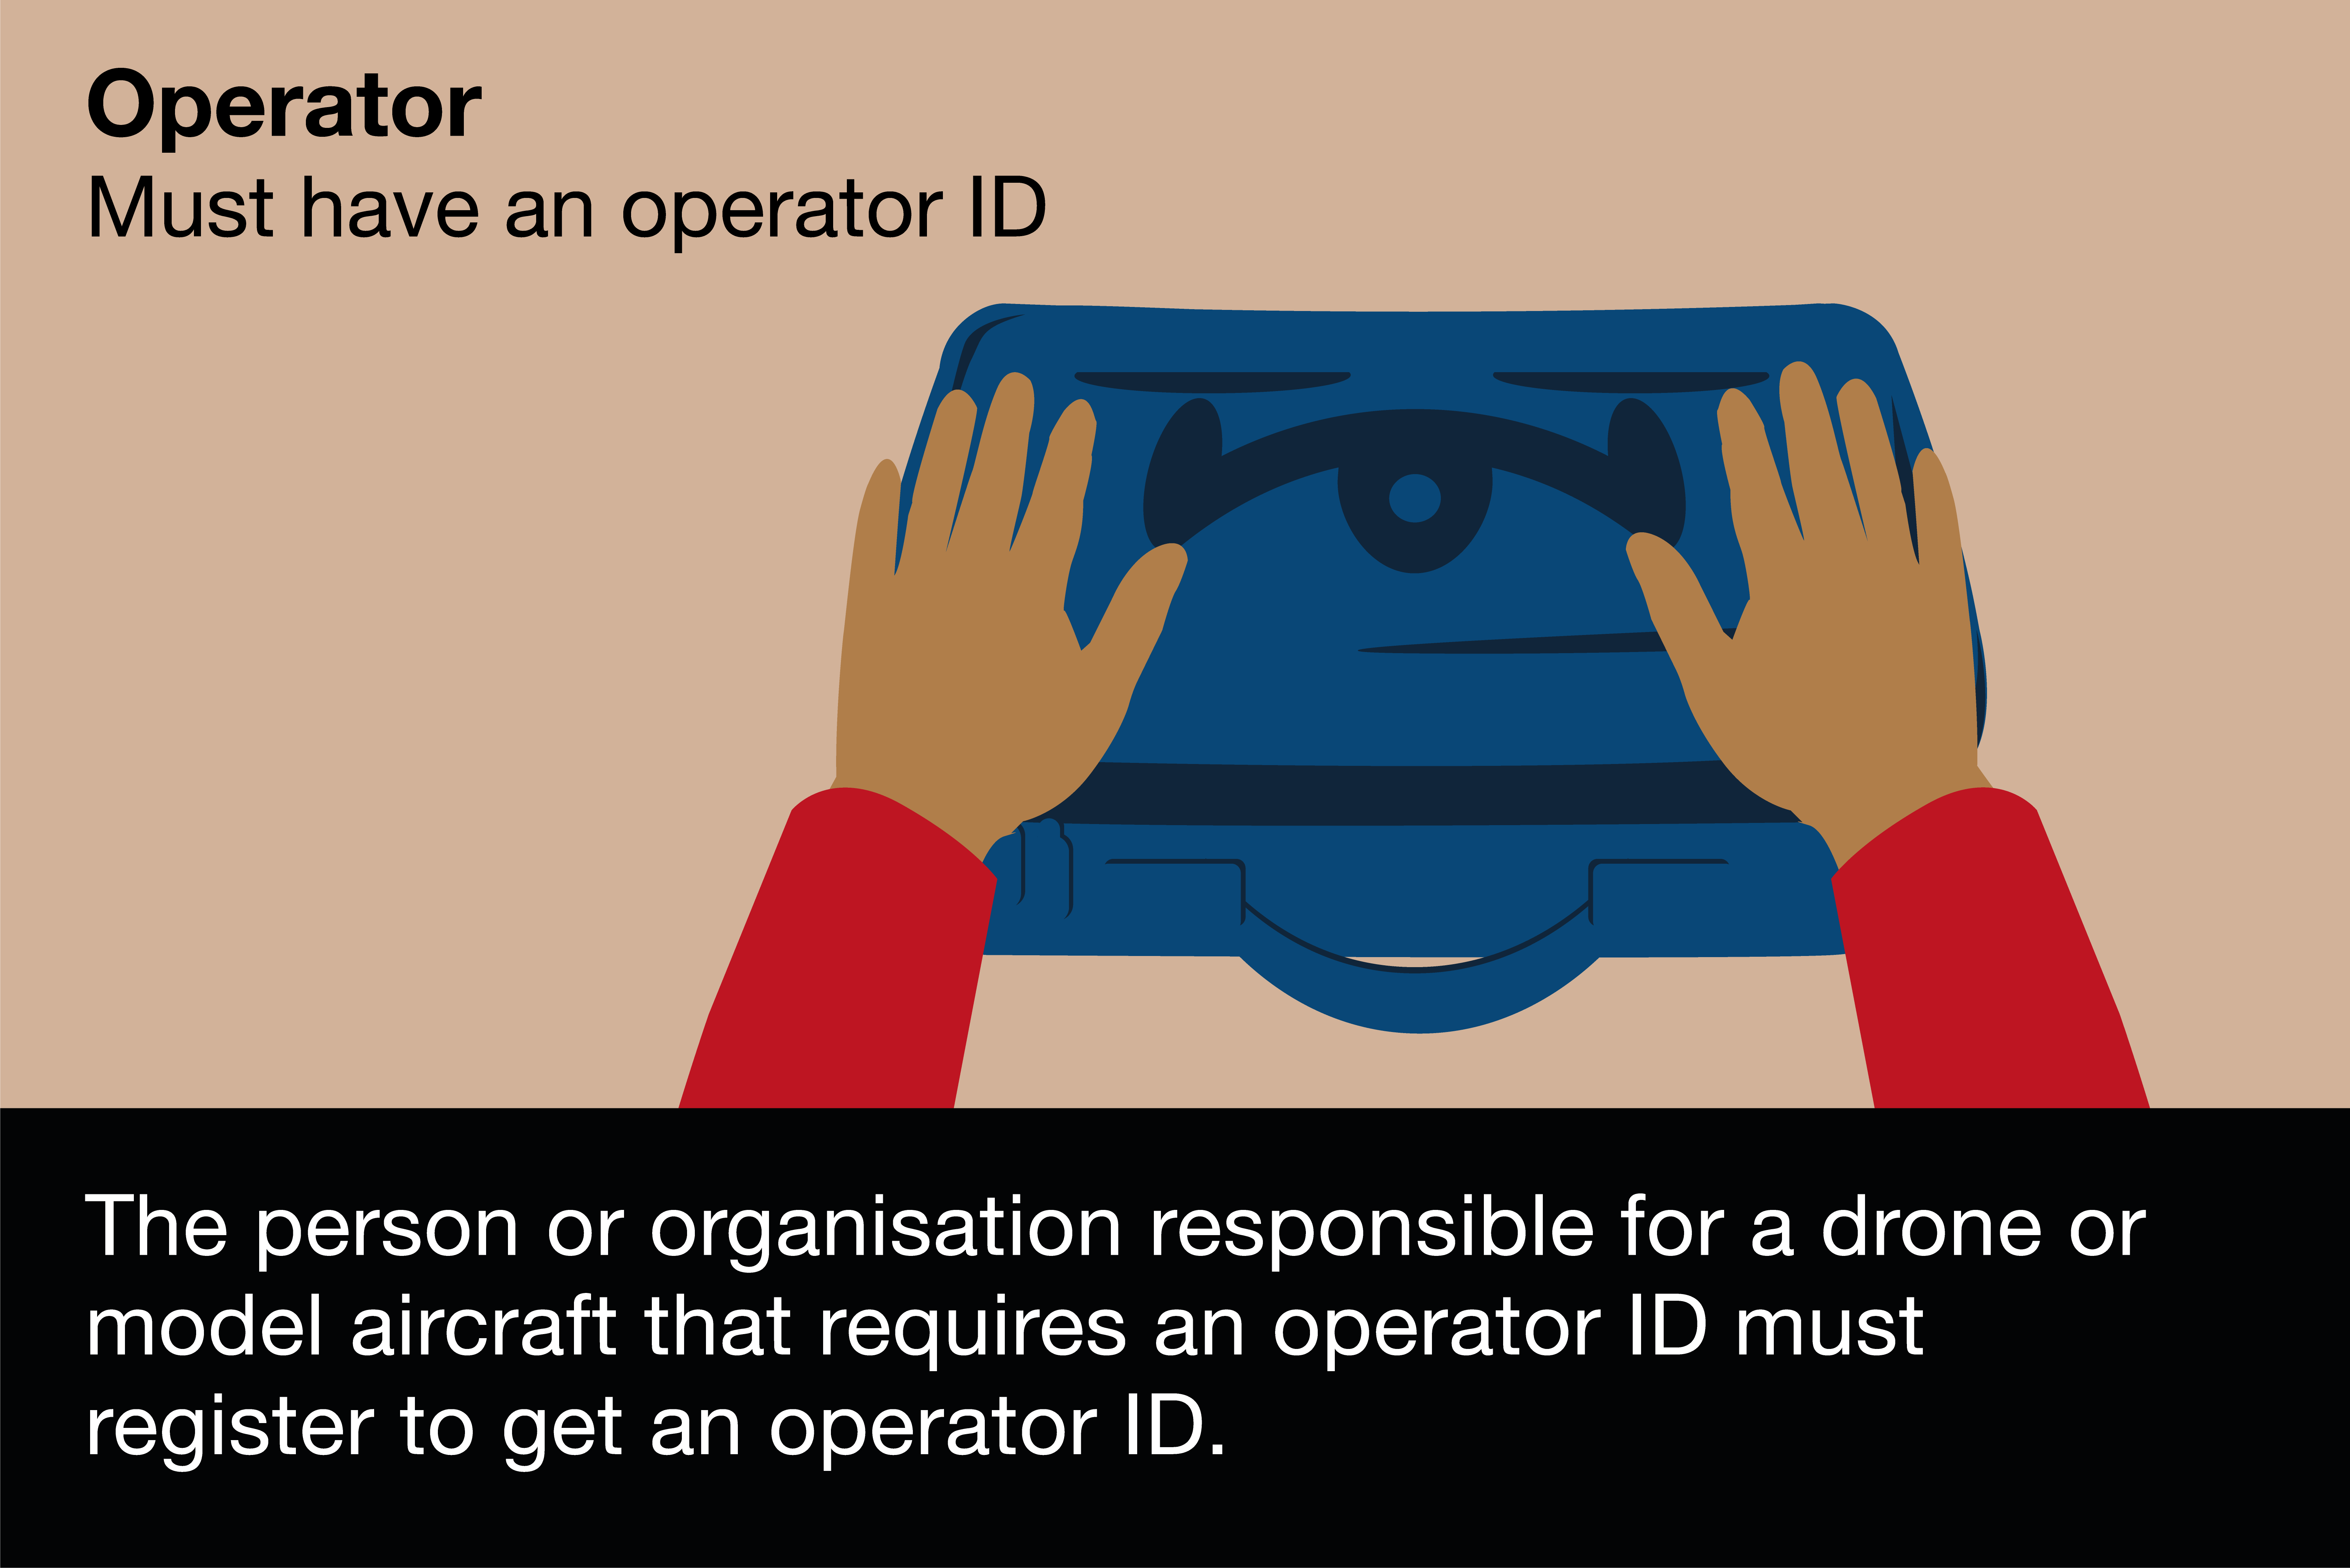 The operator must have an operator ID.